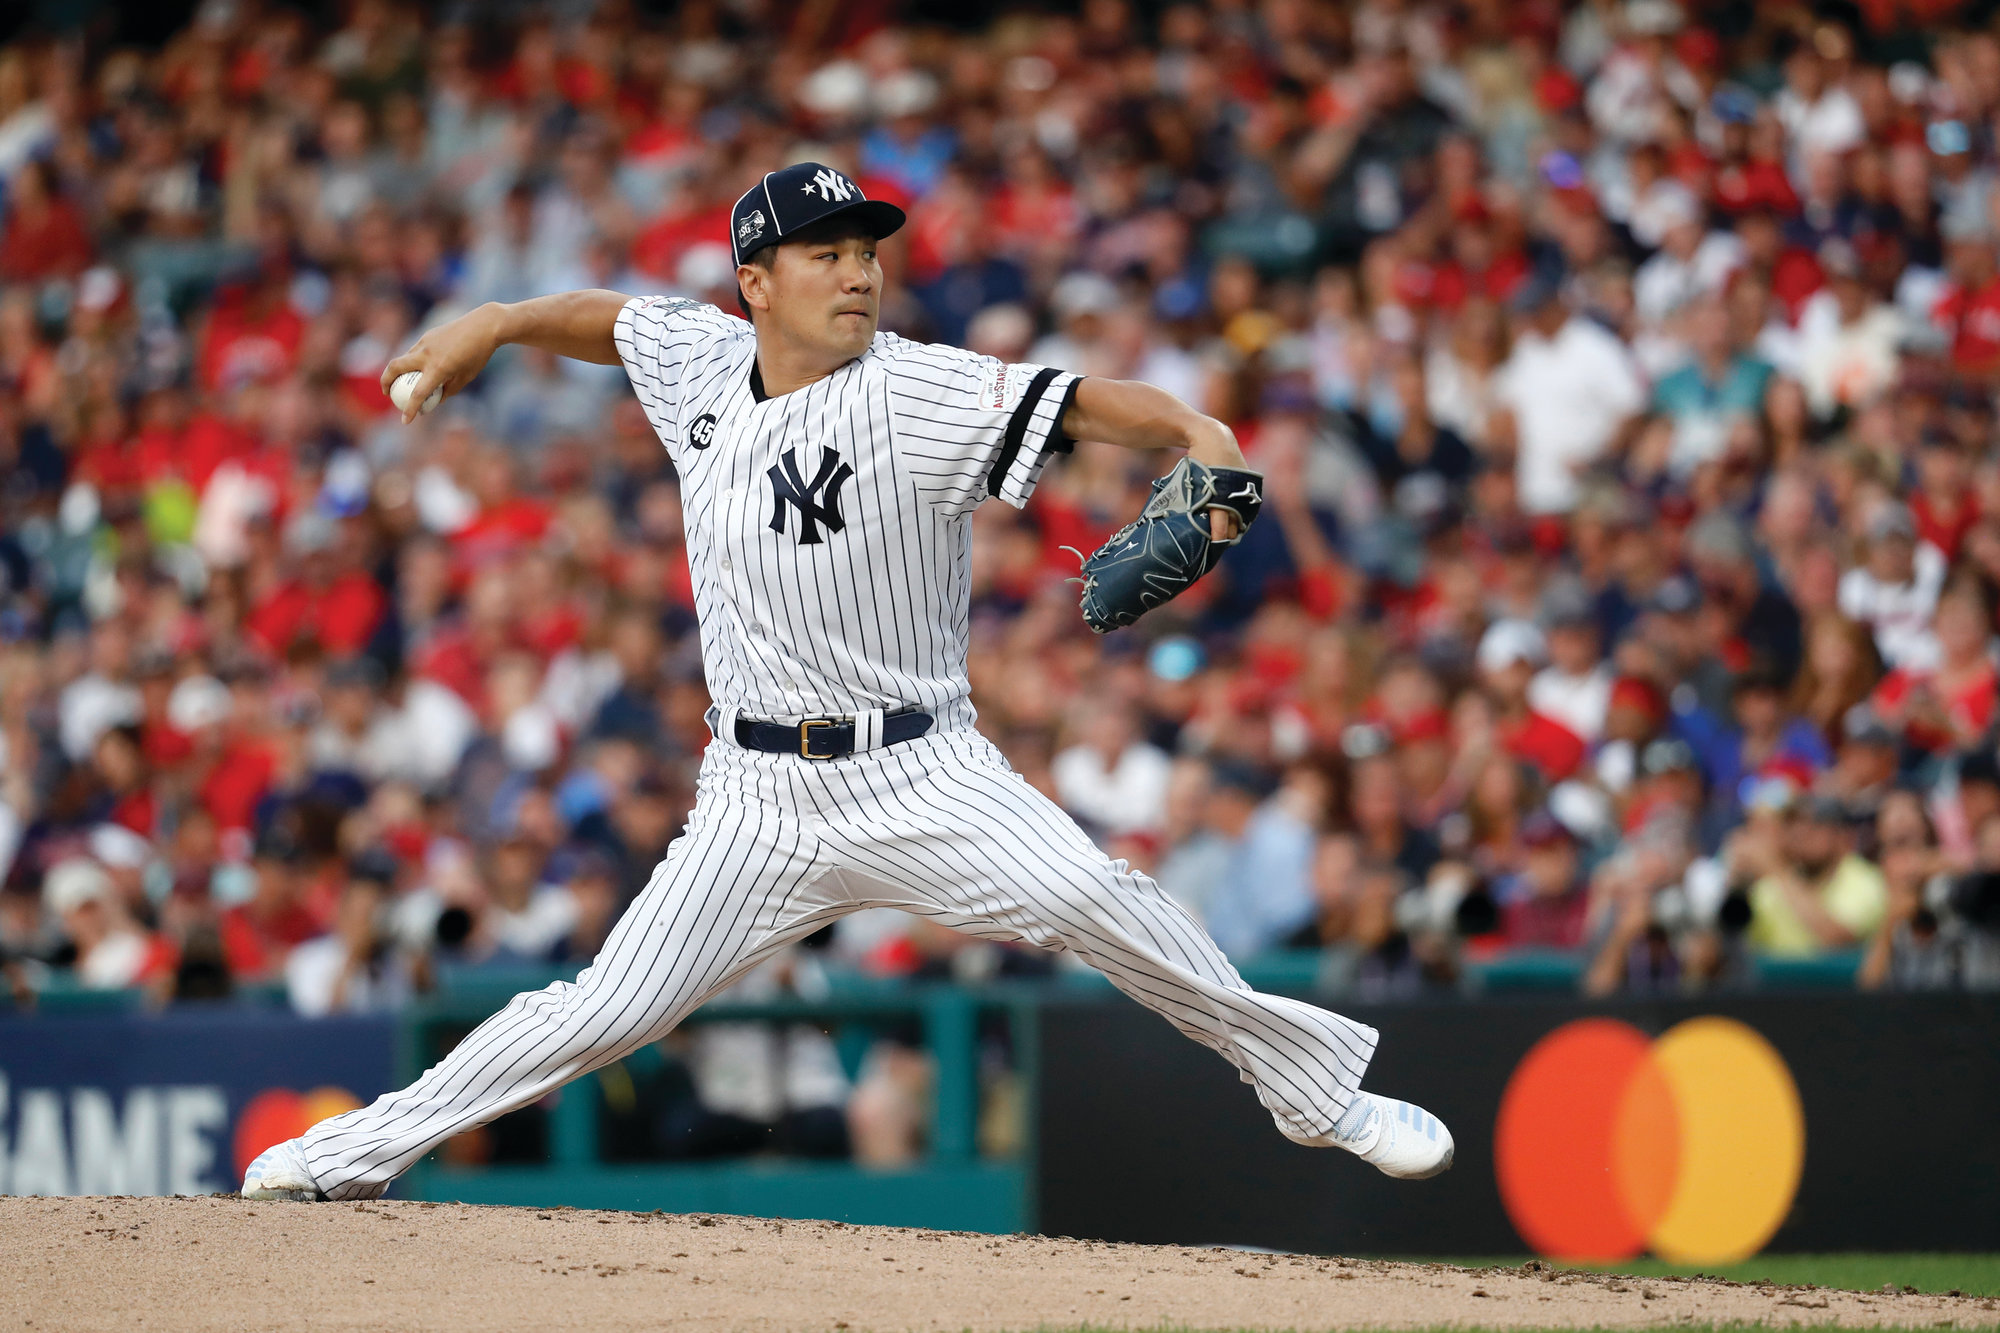 THE ASSOCIATED PRESSAmerican League Masahiro Tanaka of the New York Yankees throws during the second inning of the MLB baseball All-Star Game against the National League on Tuesday in Cleveland.